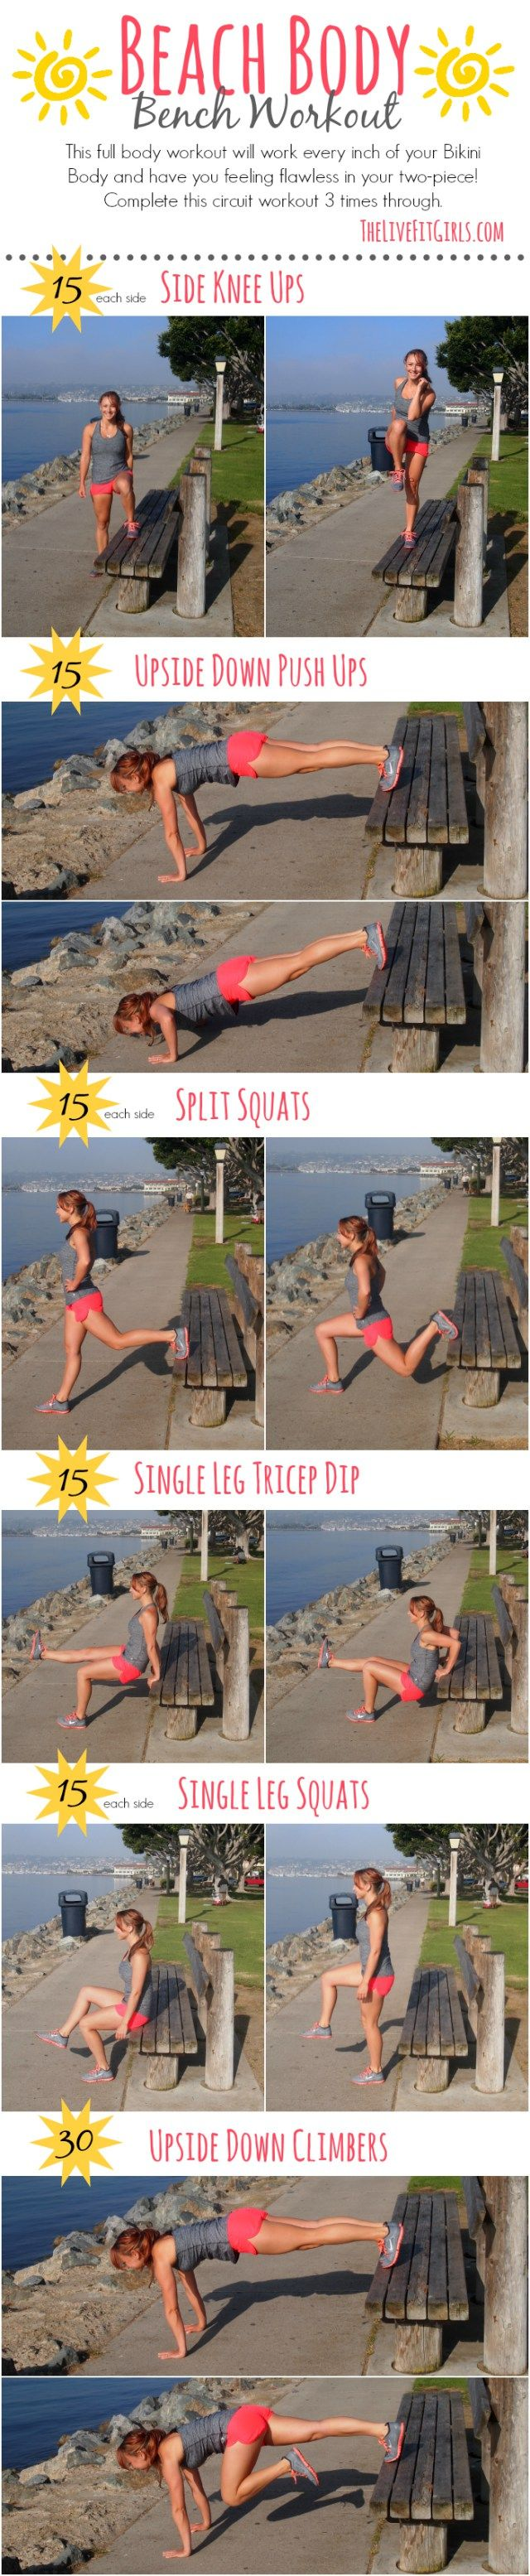 Beach Body Bench Workout